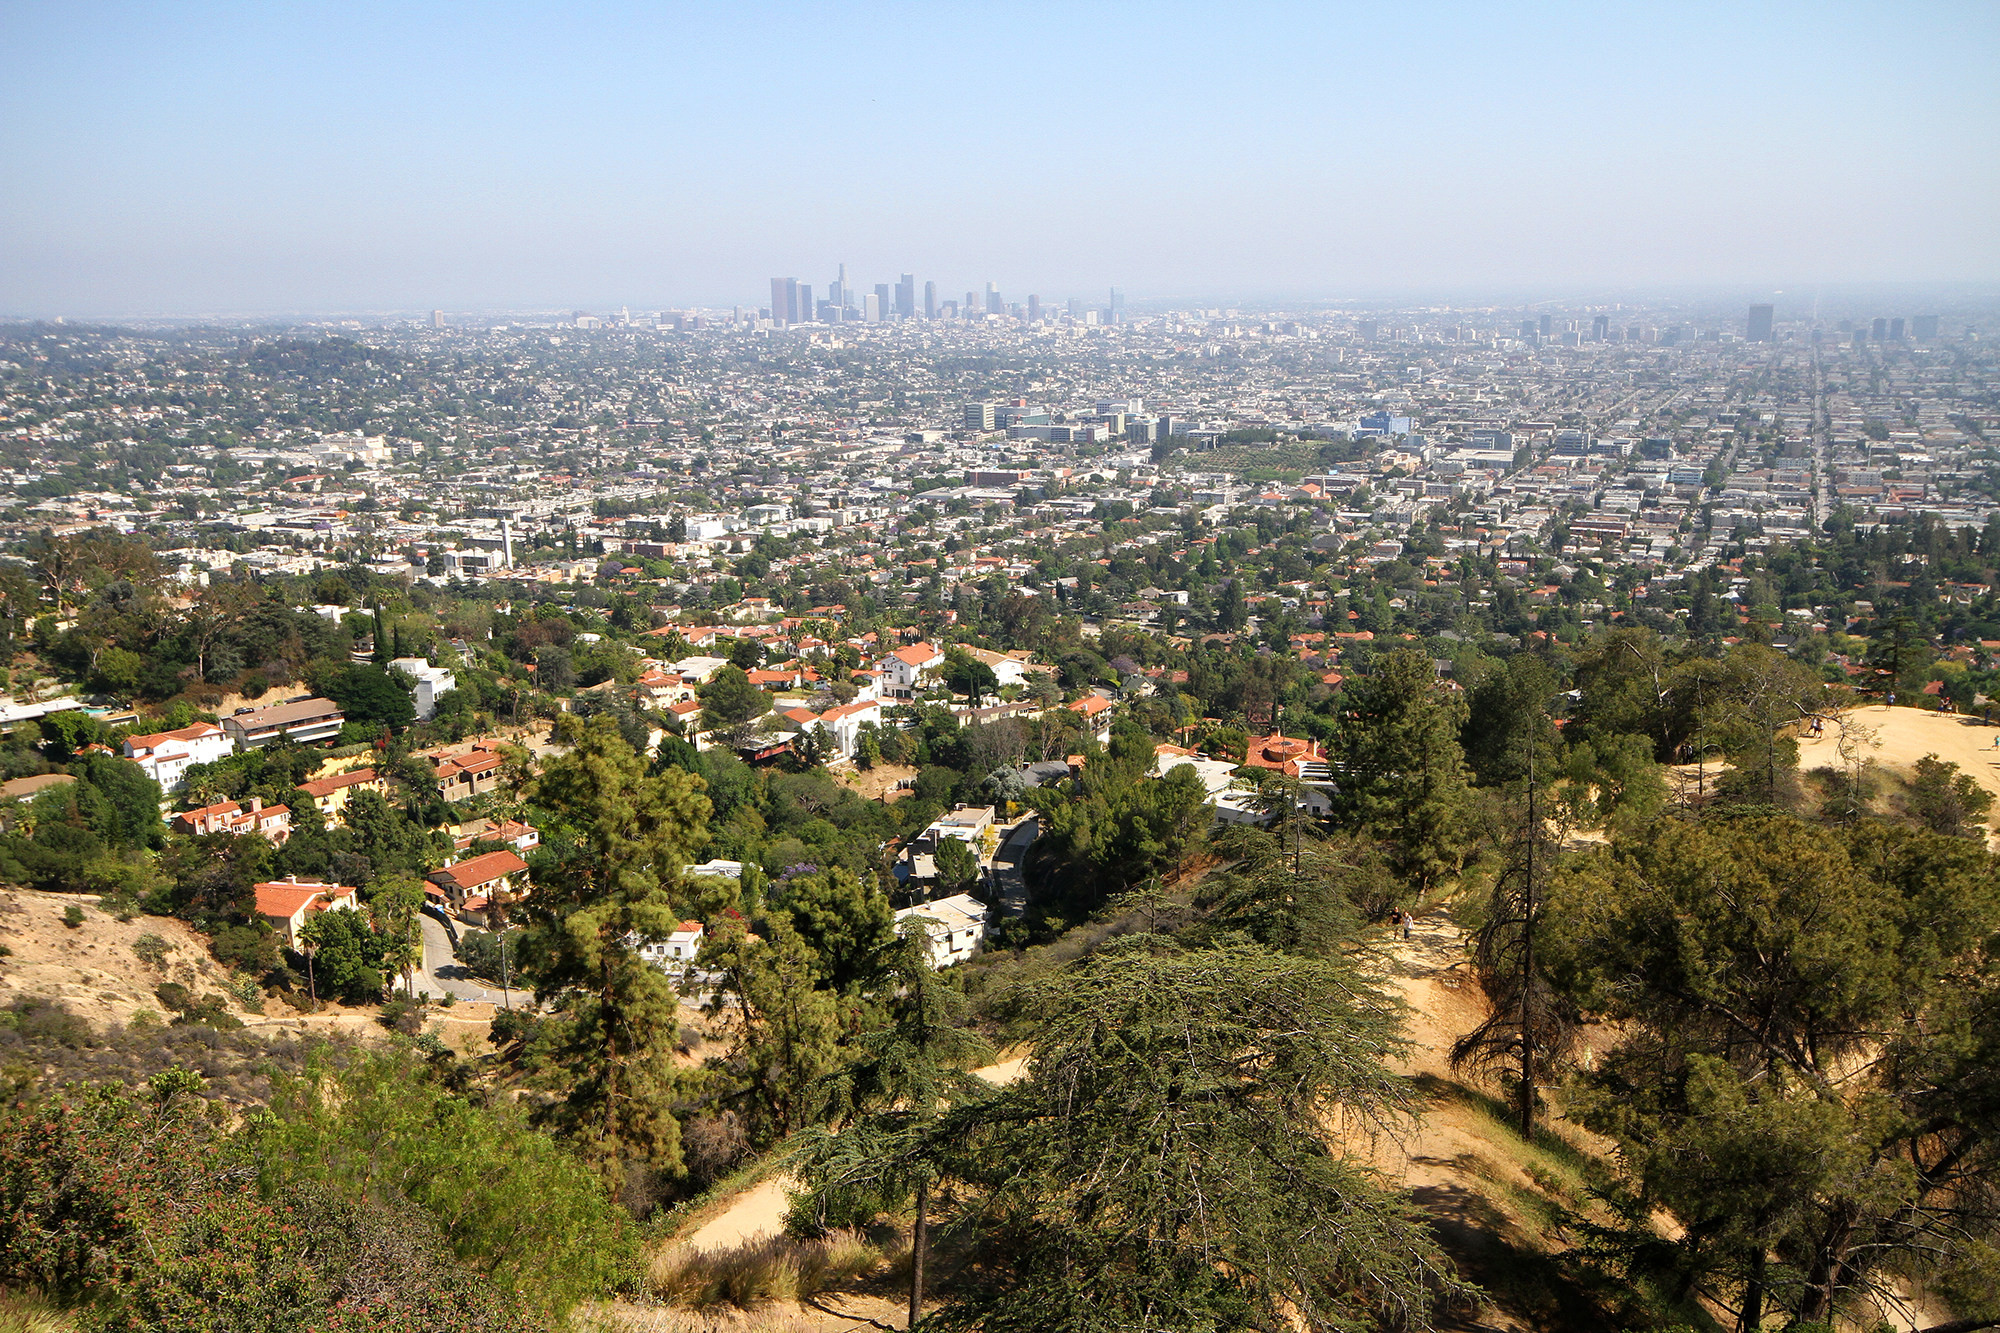 distant view of L.A.